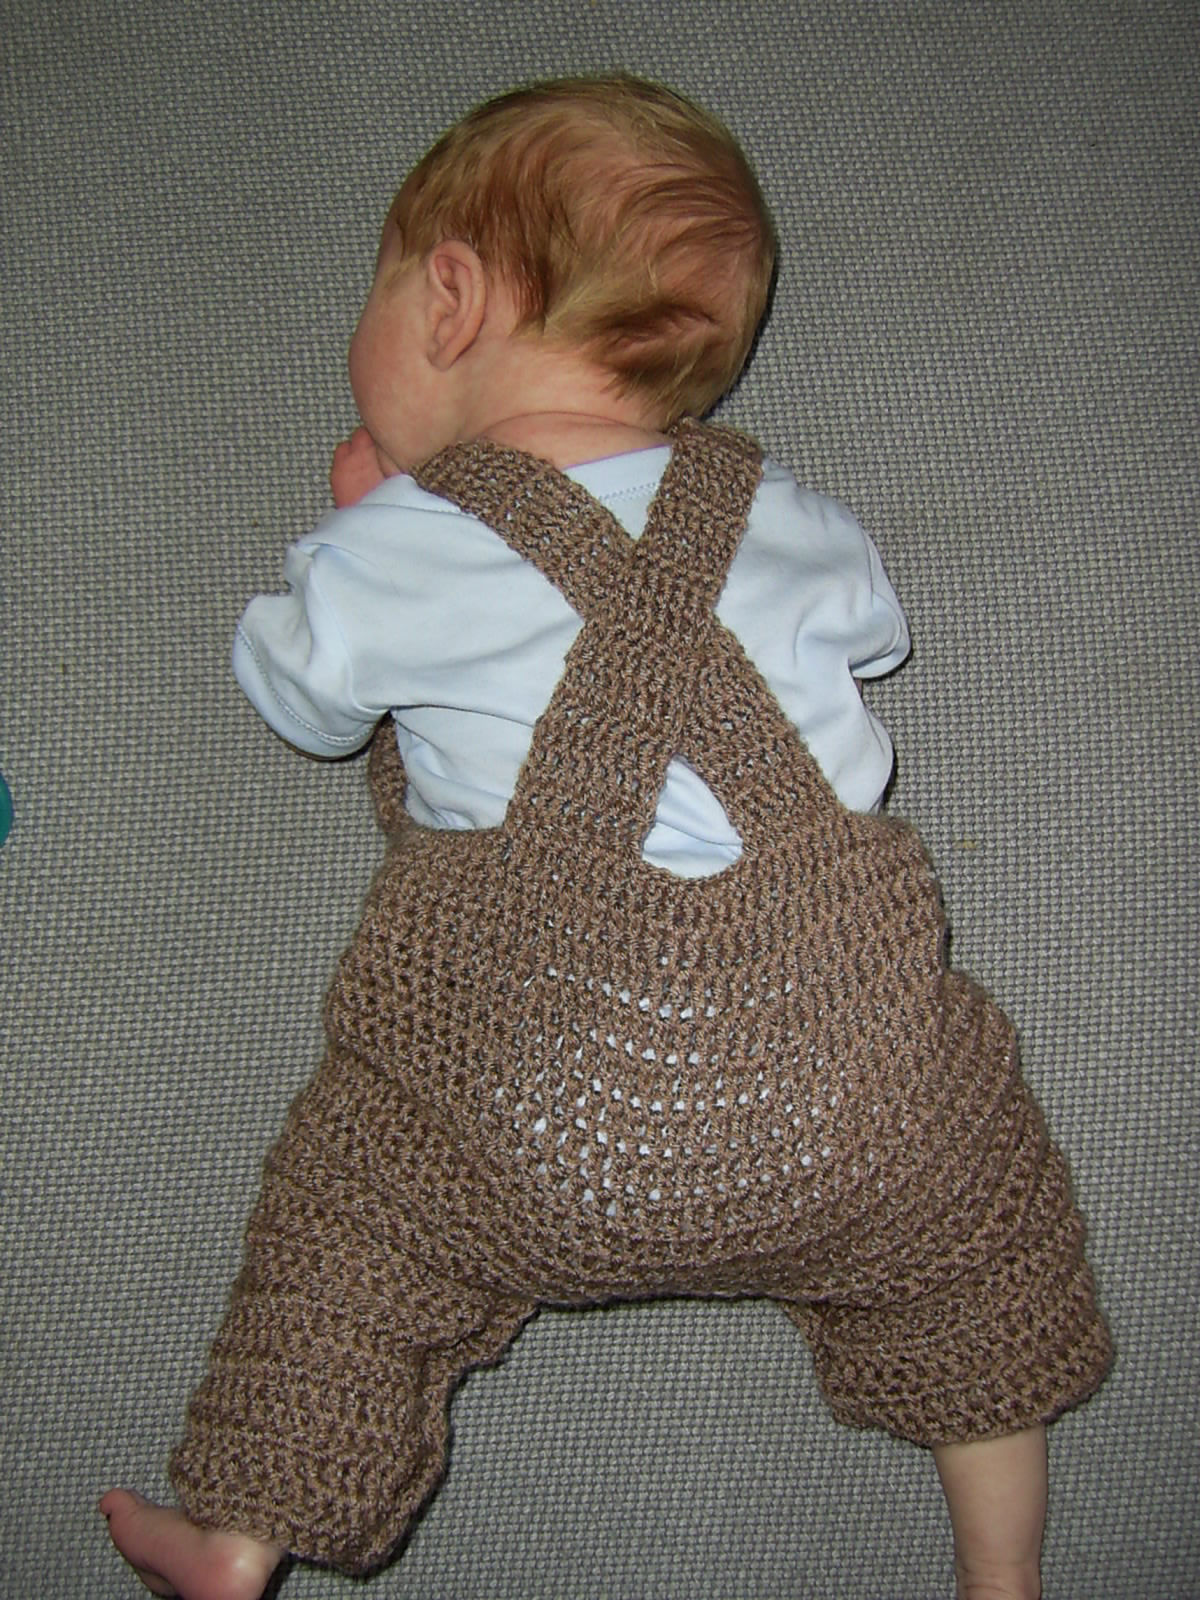 Crochet Pattern Baby Dungarees : Mauv is Crafty: Crochet dungarees - free pattern!